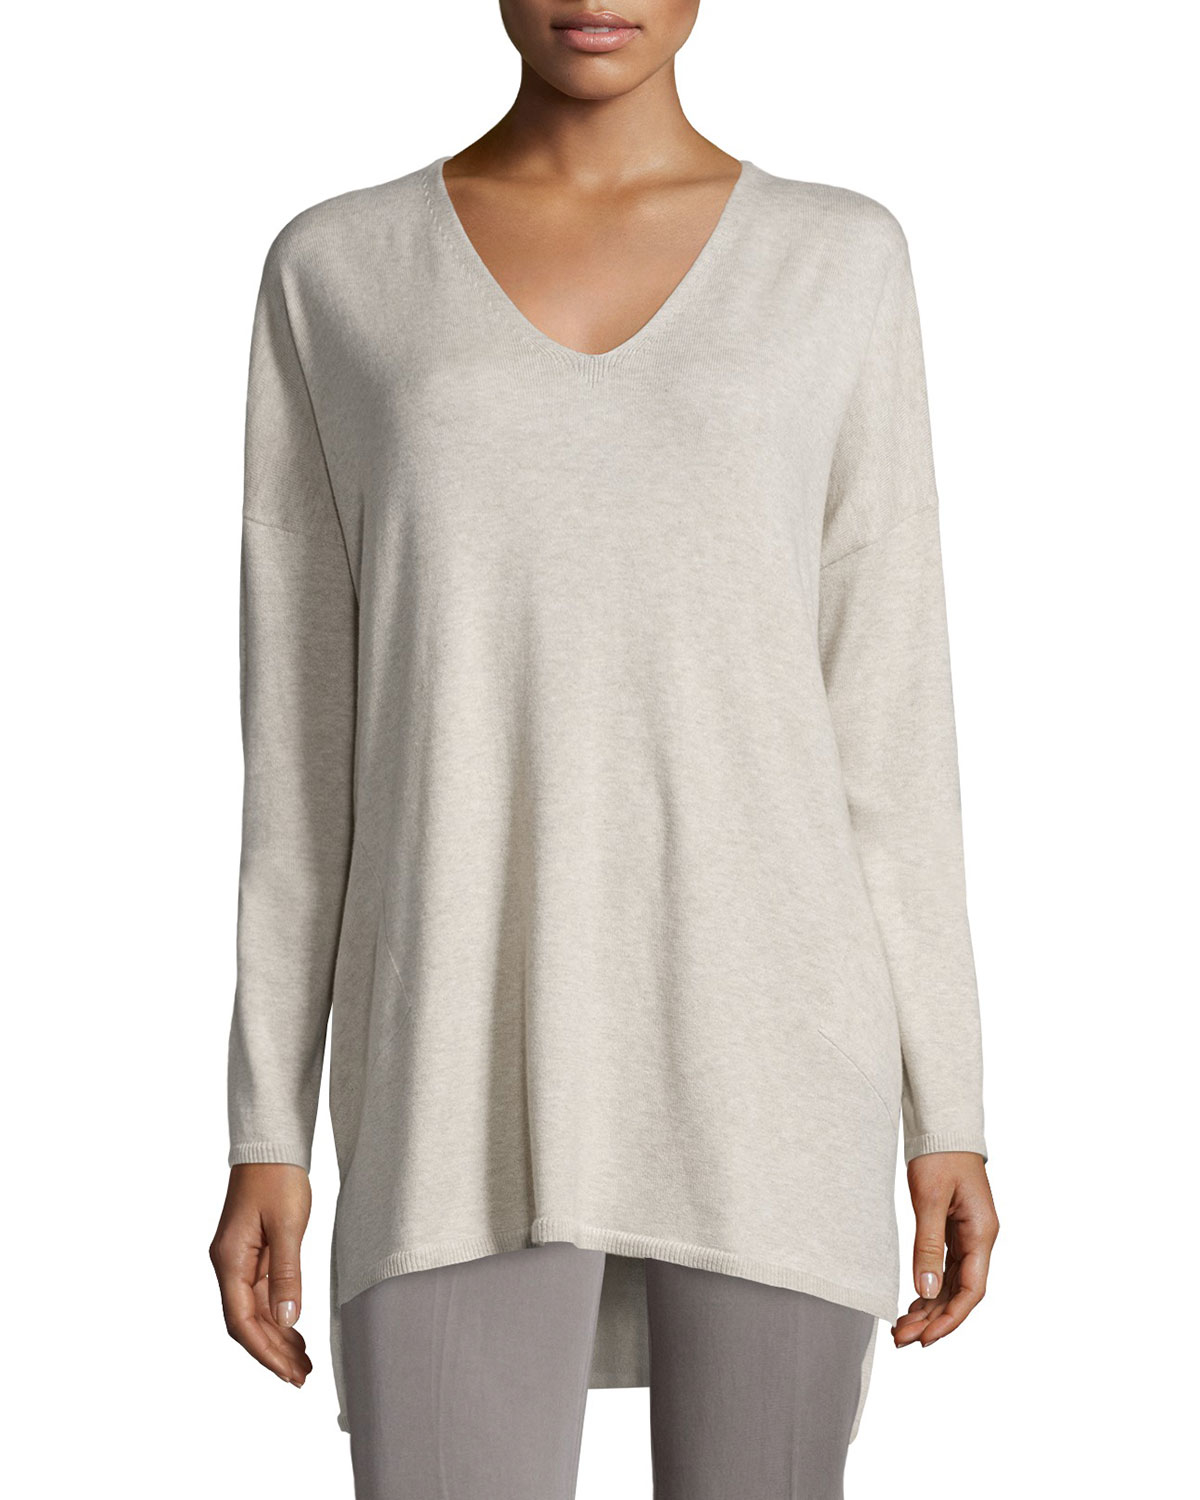 8924e2f0647 Eileen Fisher V-neck Organic Cotton Tunic With Pockets in Natural - Lyst